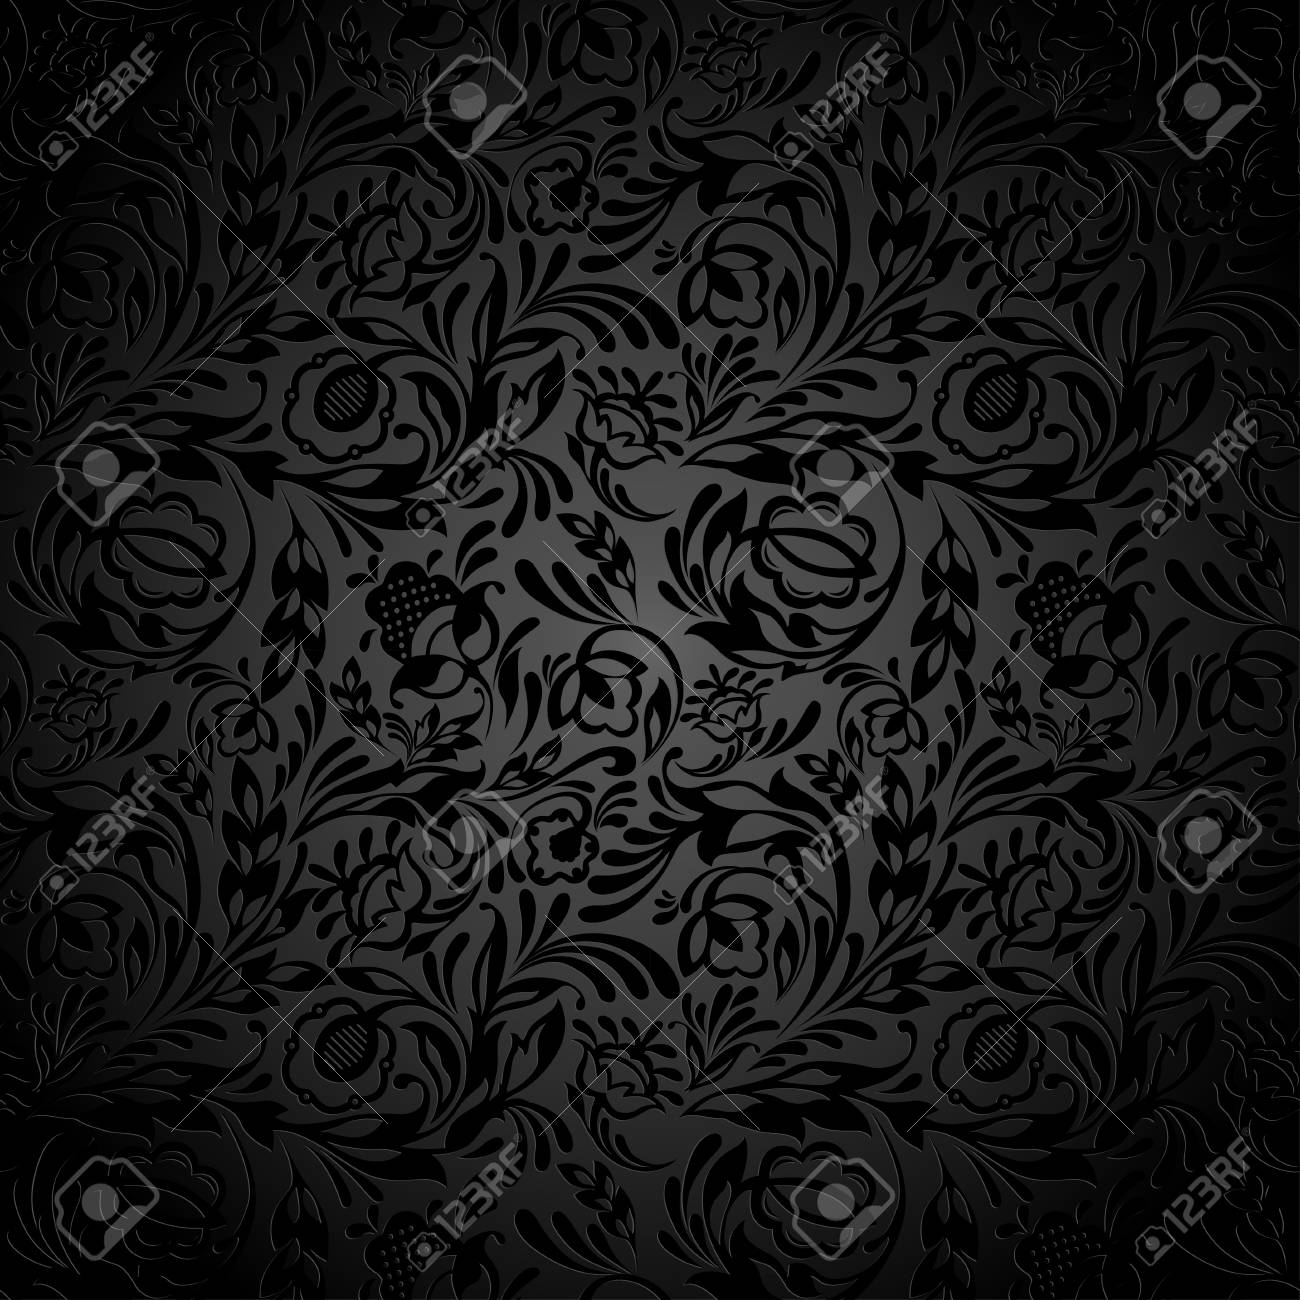 Black Floral Wallpaper Pattern Royalty Free Cliparts Vectors